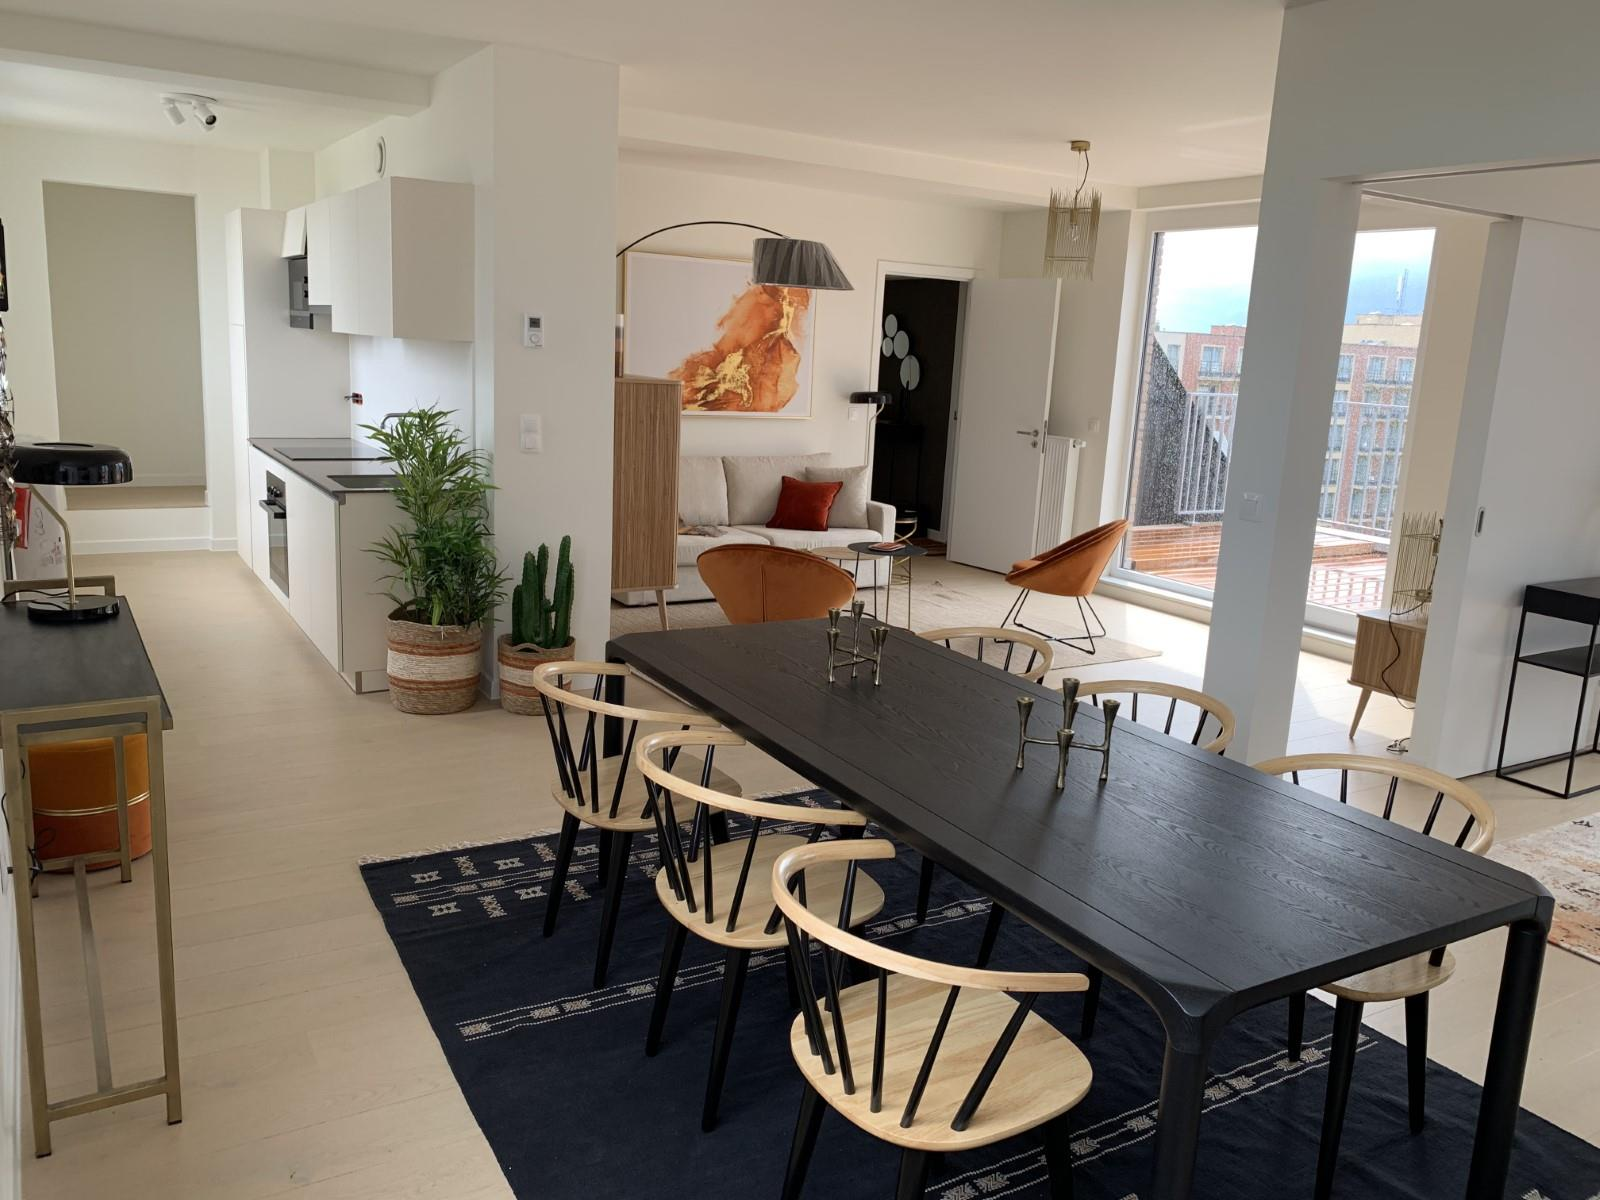 Appartement exceptionnel - Schaerbeek - #4080572-4